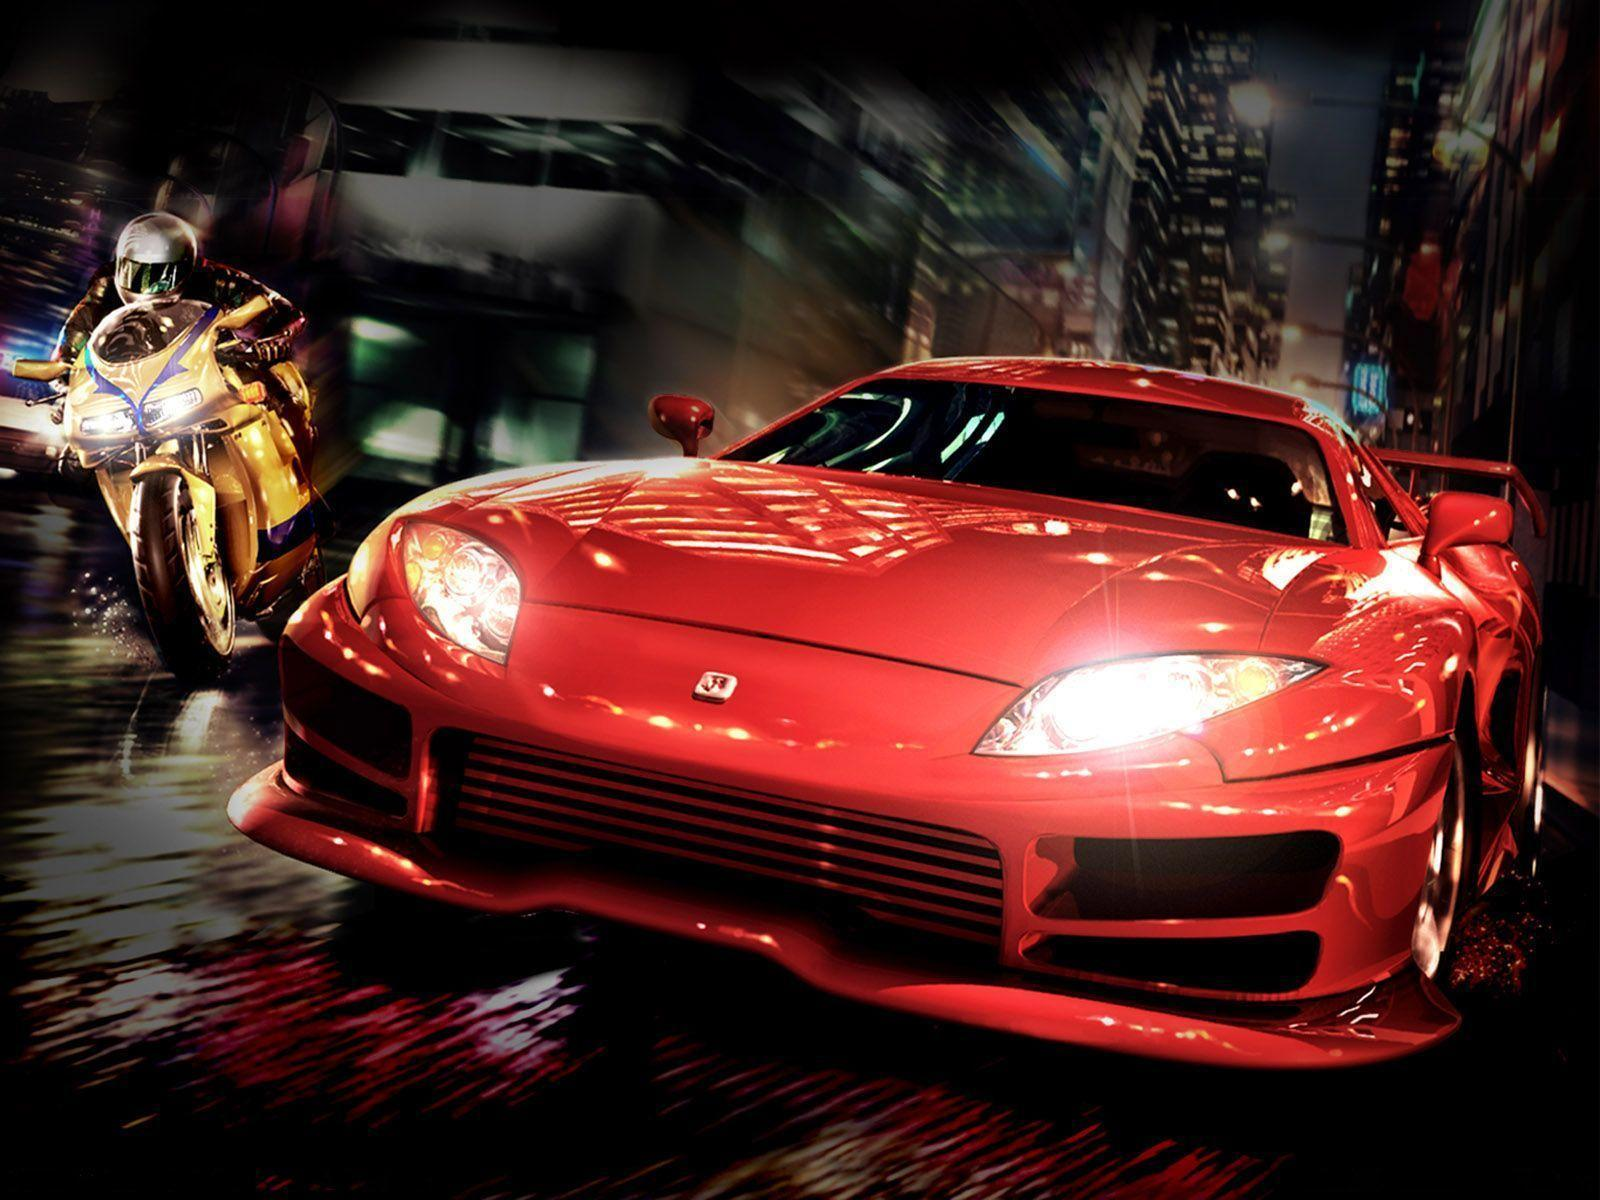 Great 3D Car HD Desktop Backgrounds Images , Free Widescreen HD ...